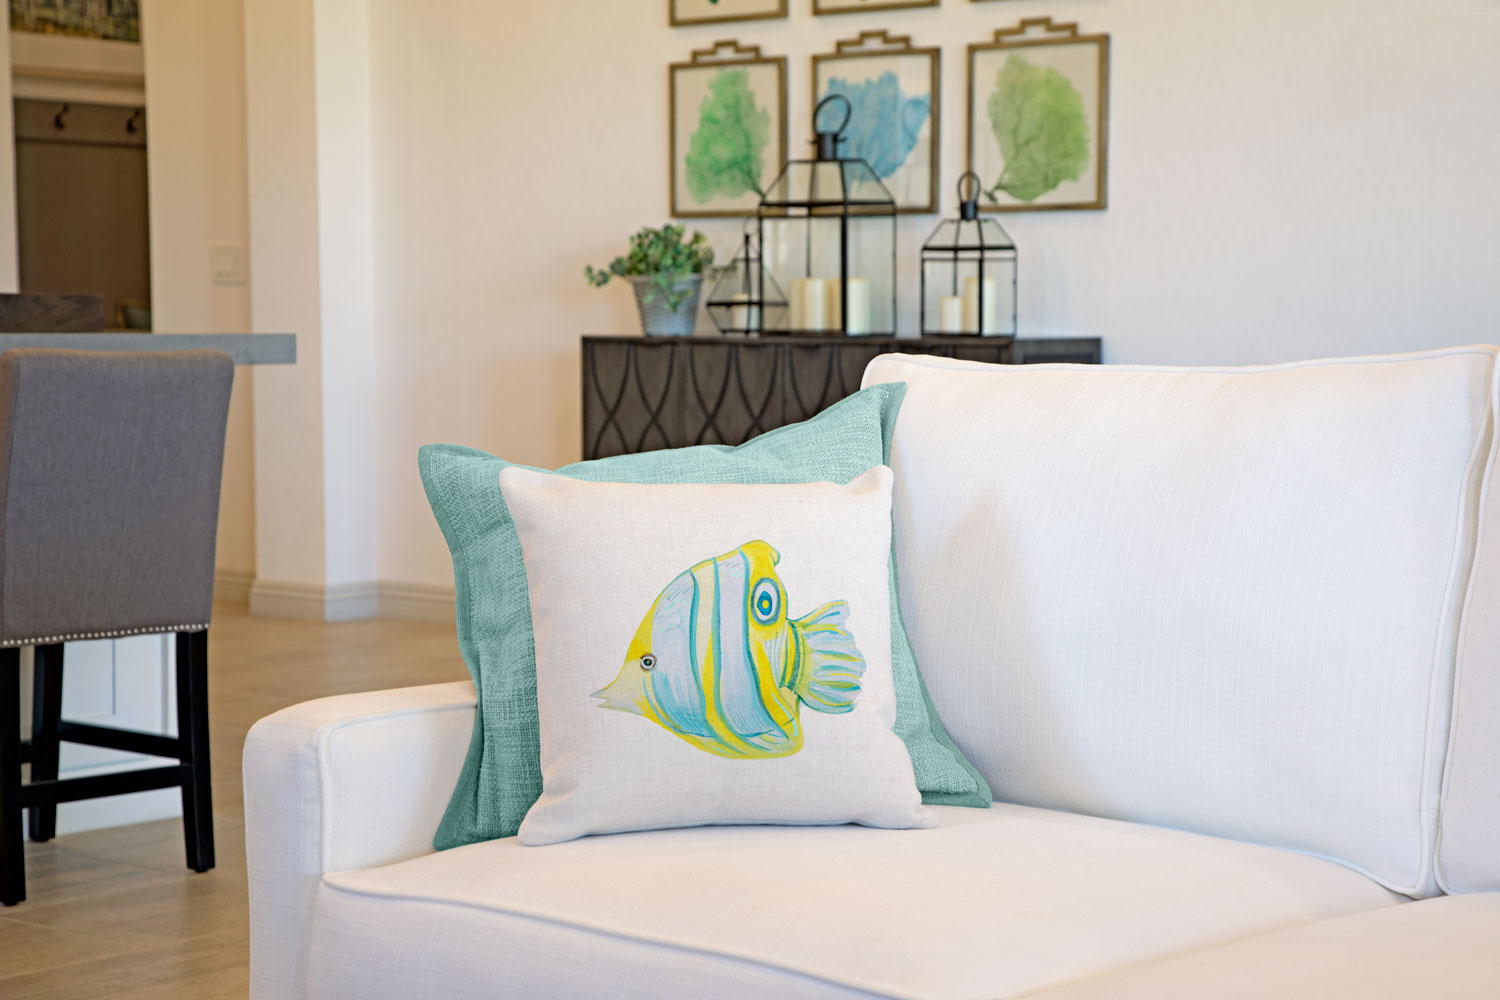 Butterflyfish Throw Pillow Cover - Coastal Designs Throw Pillow Cover Collection-Di Lewis